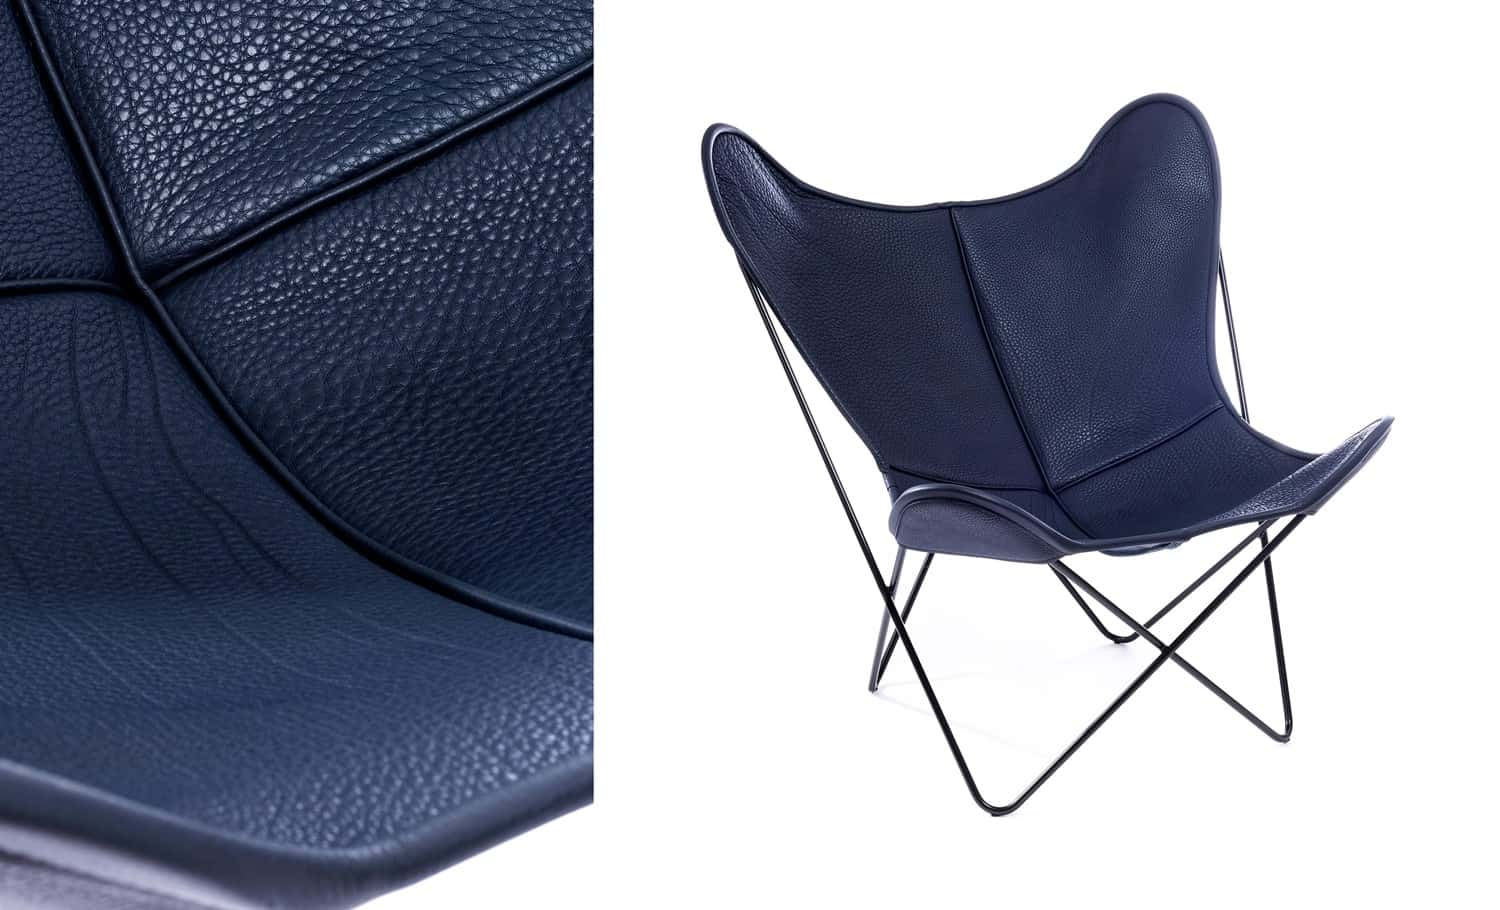 A MIDNIGHT BLUE TEXTURED LEATHER CHAIR